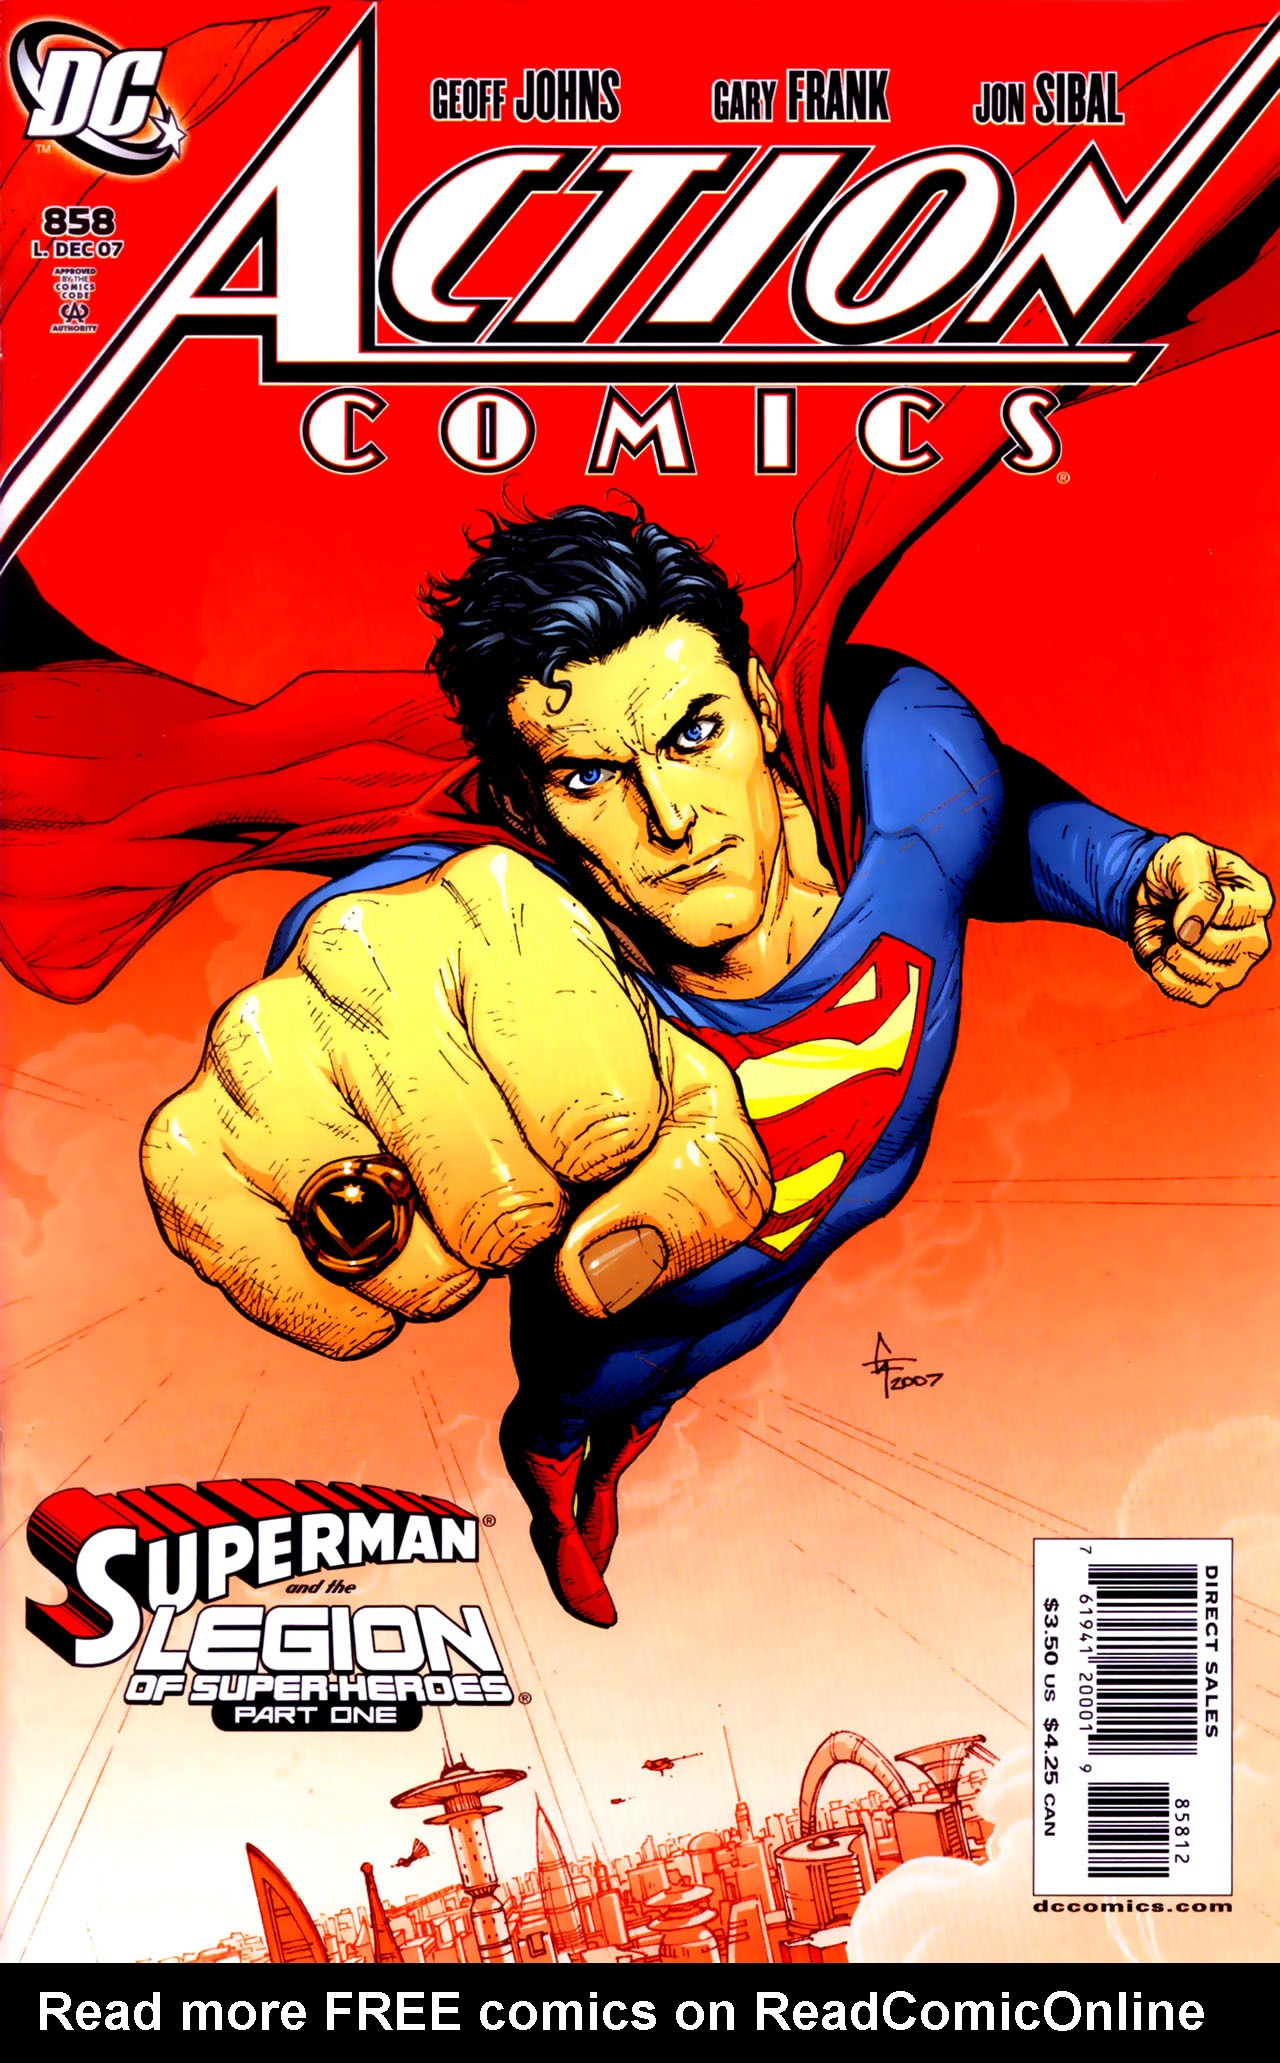 Read online Action Comics (1938) comic -  Issue #858 - 4